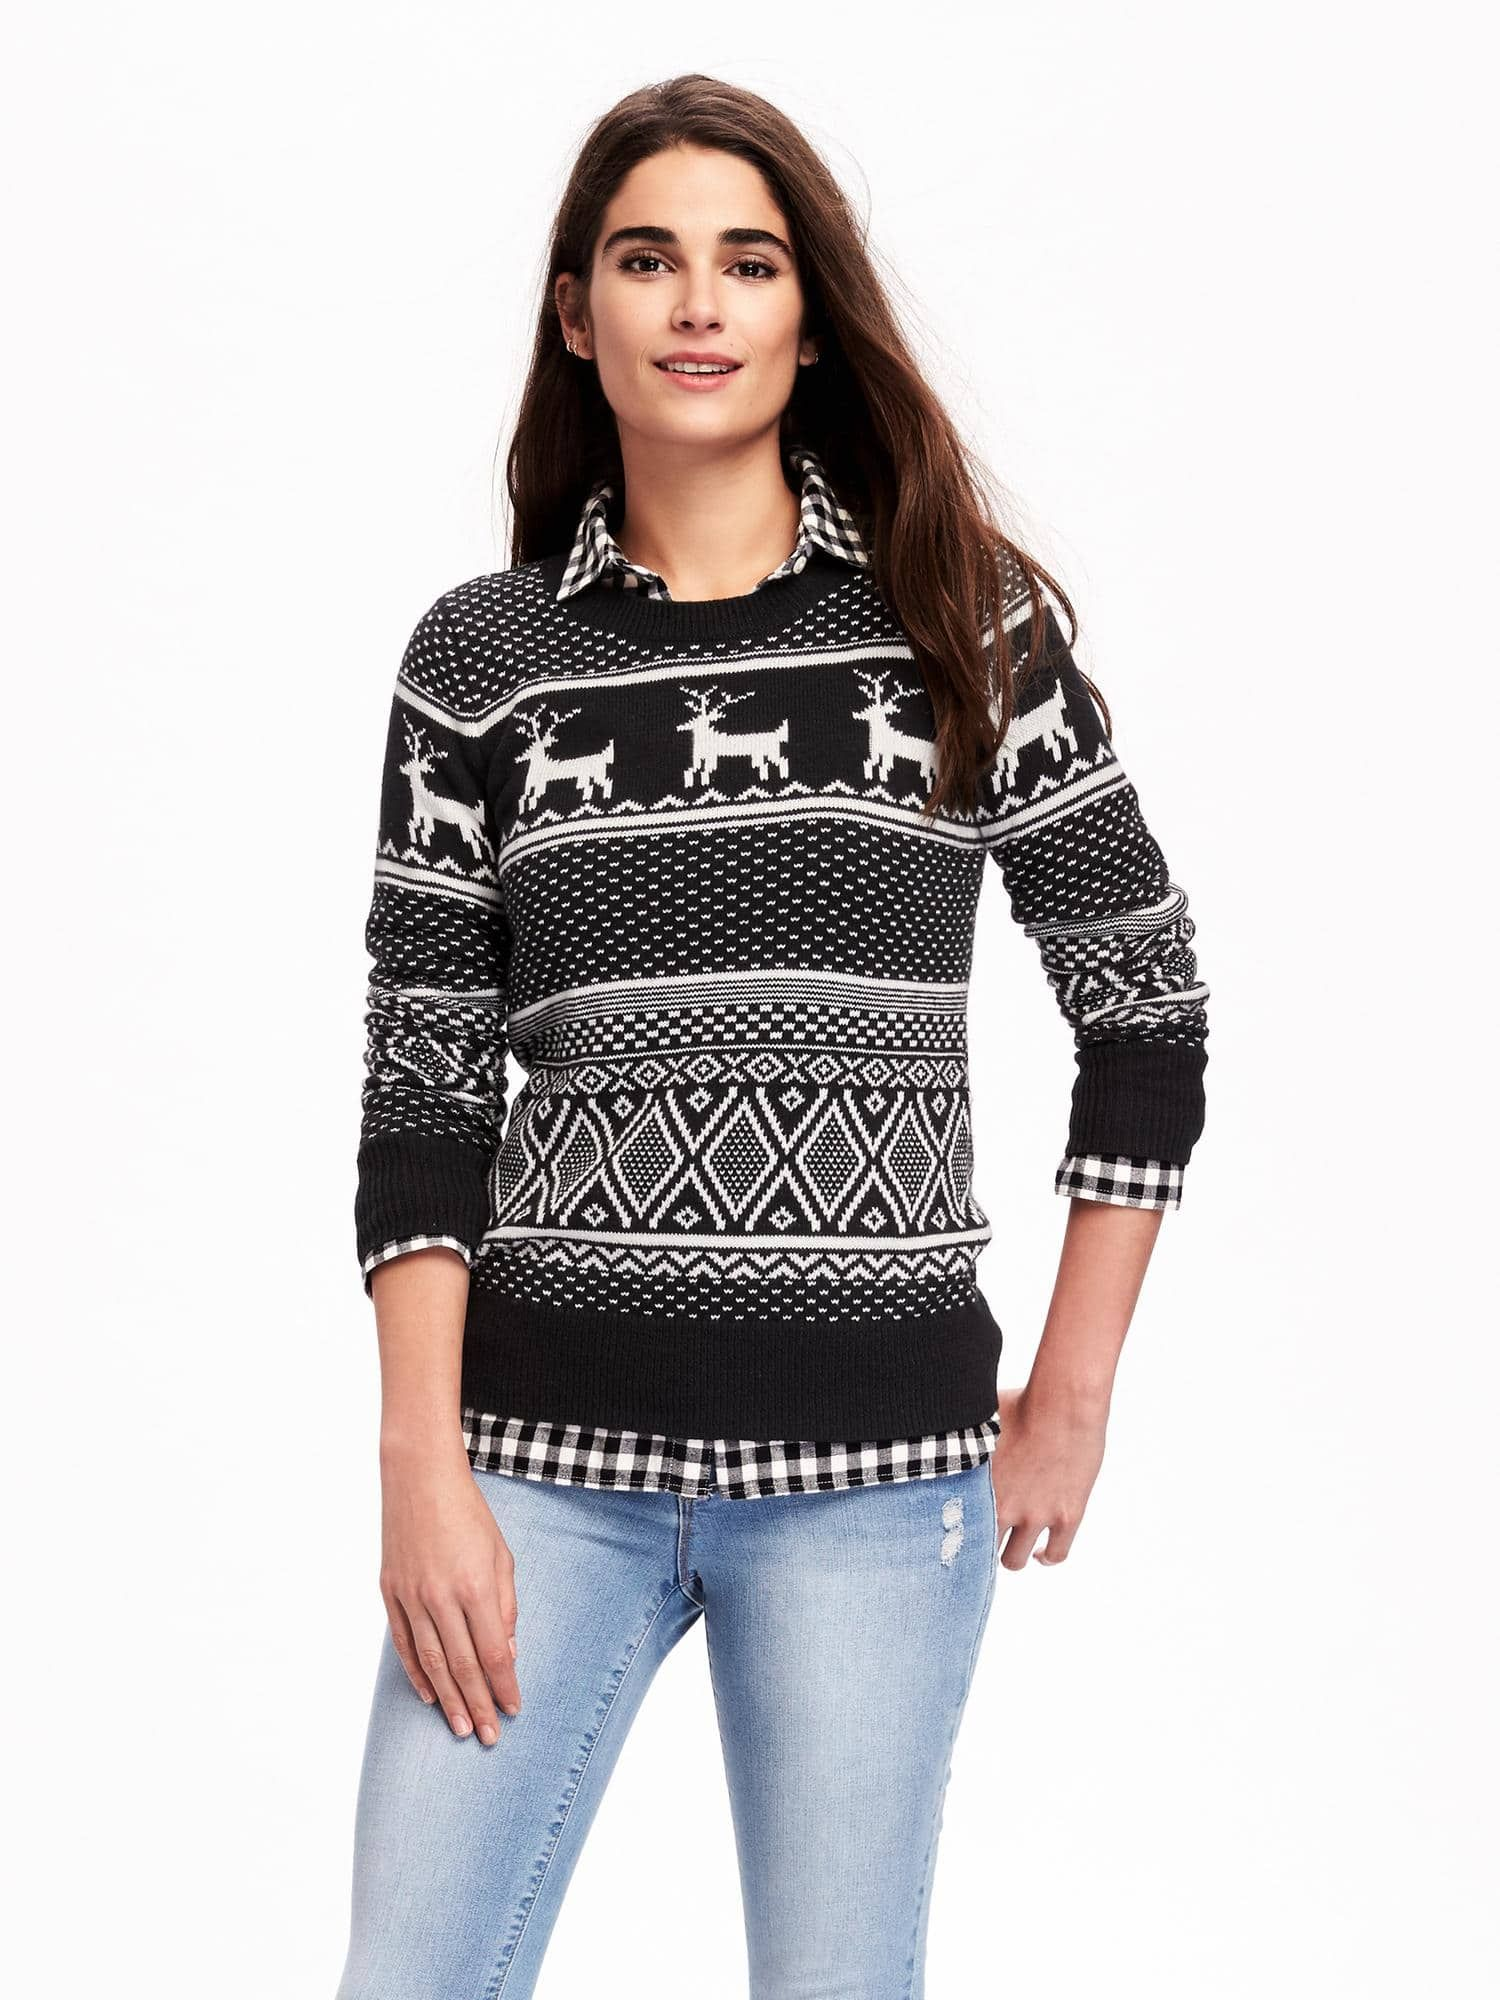 Reindeer-Graphic Sweater for Women | Old Navy | Clothes | Pinterest ...